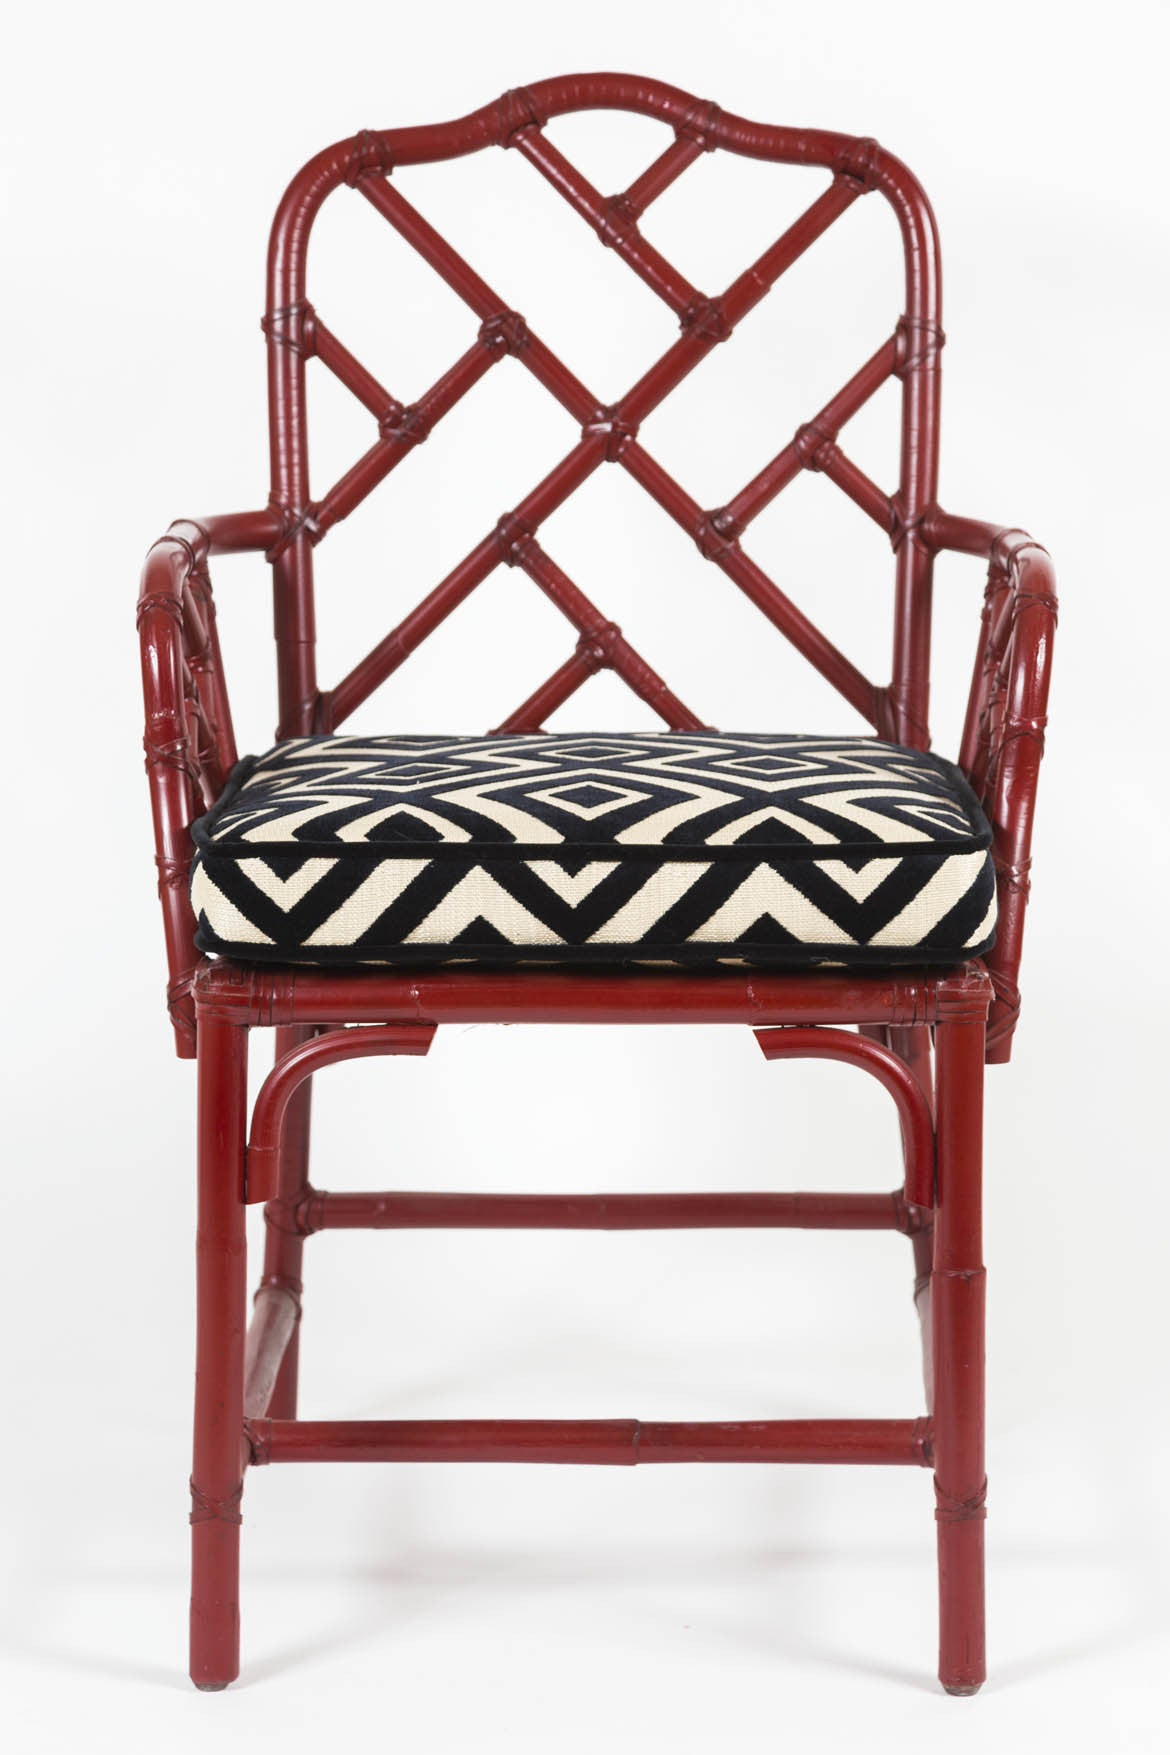 Bamboo chippendale chairs -  Pair Of Vintage Red Lacquered Bamboo Chinese Chippendale Armchairs With Custom Cushions